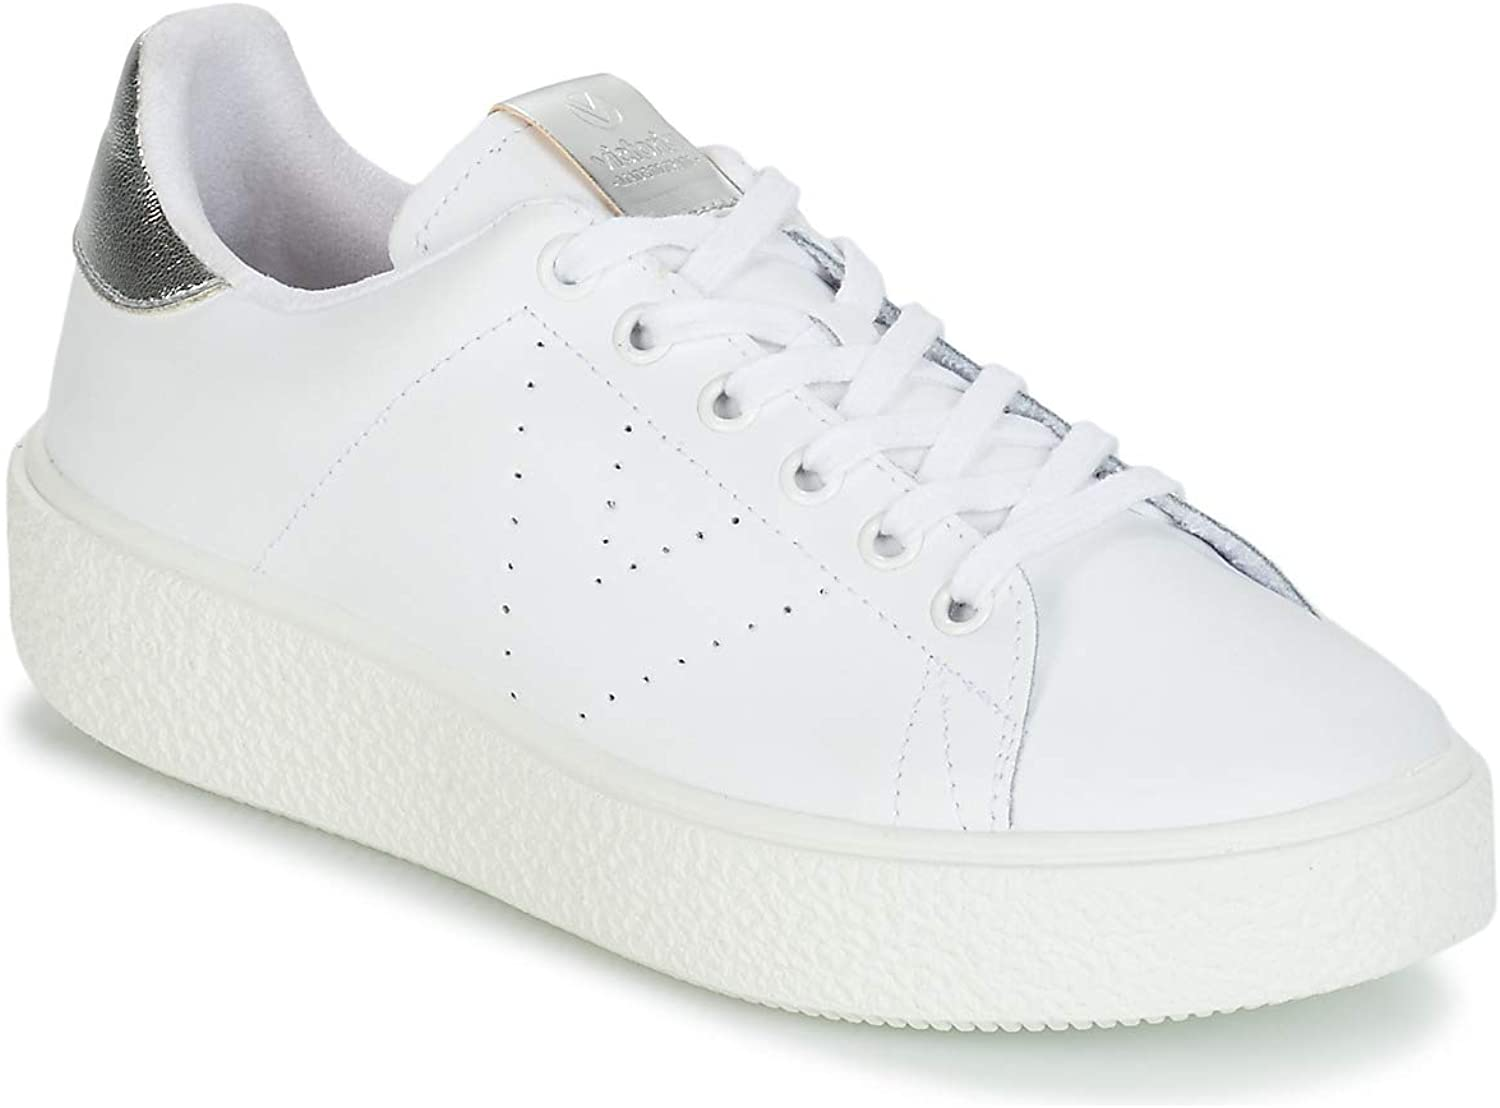 Victoria shoes Woman Low Sneakers with Platform 262115 Bianco-silver Size 37 White Silver